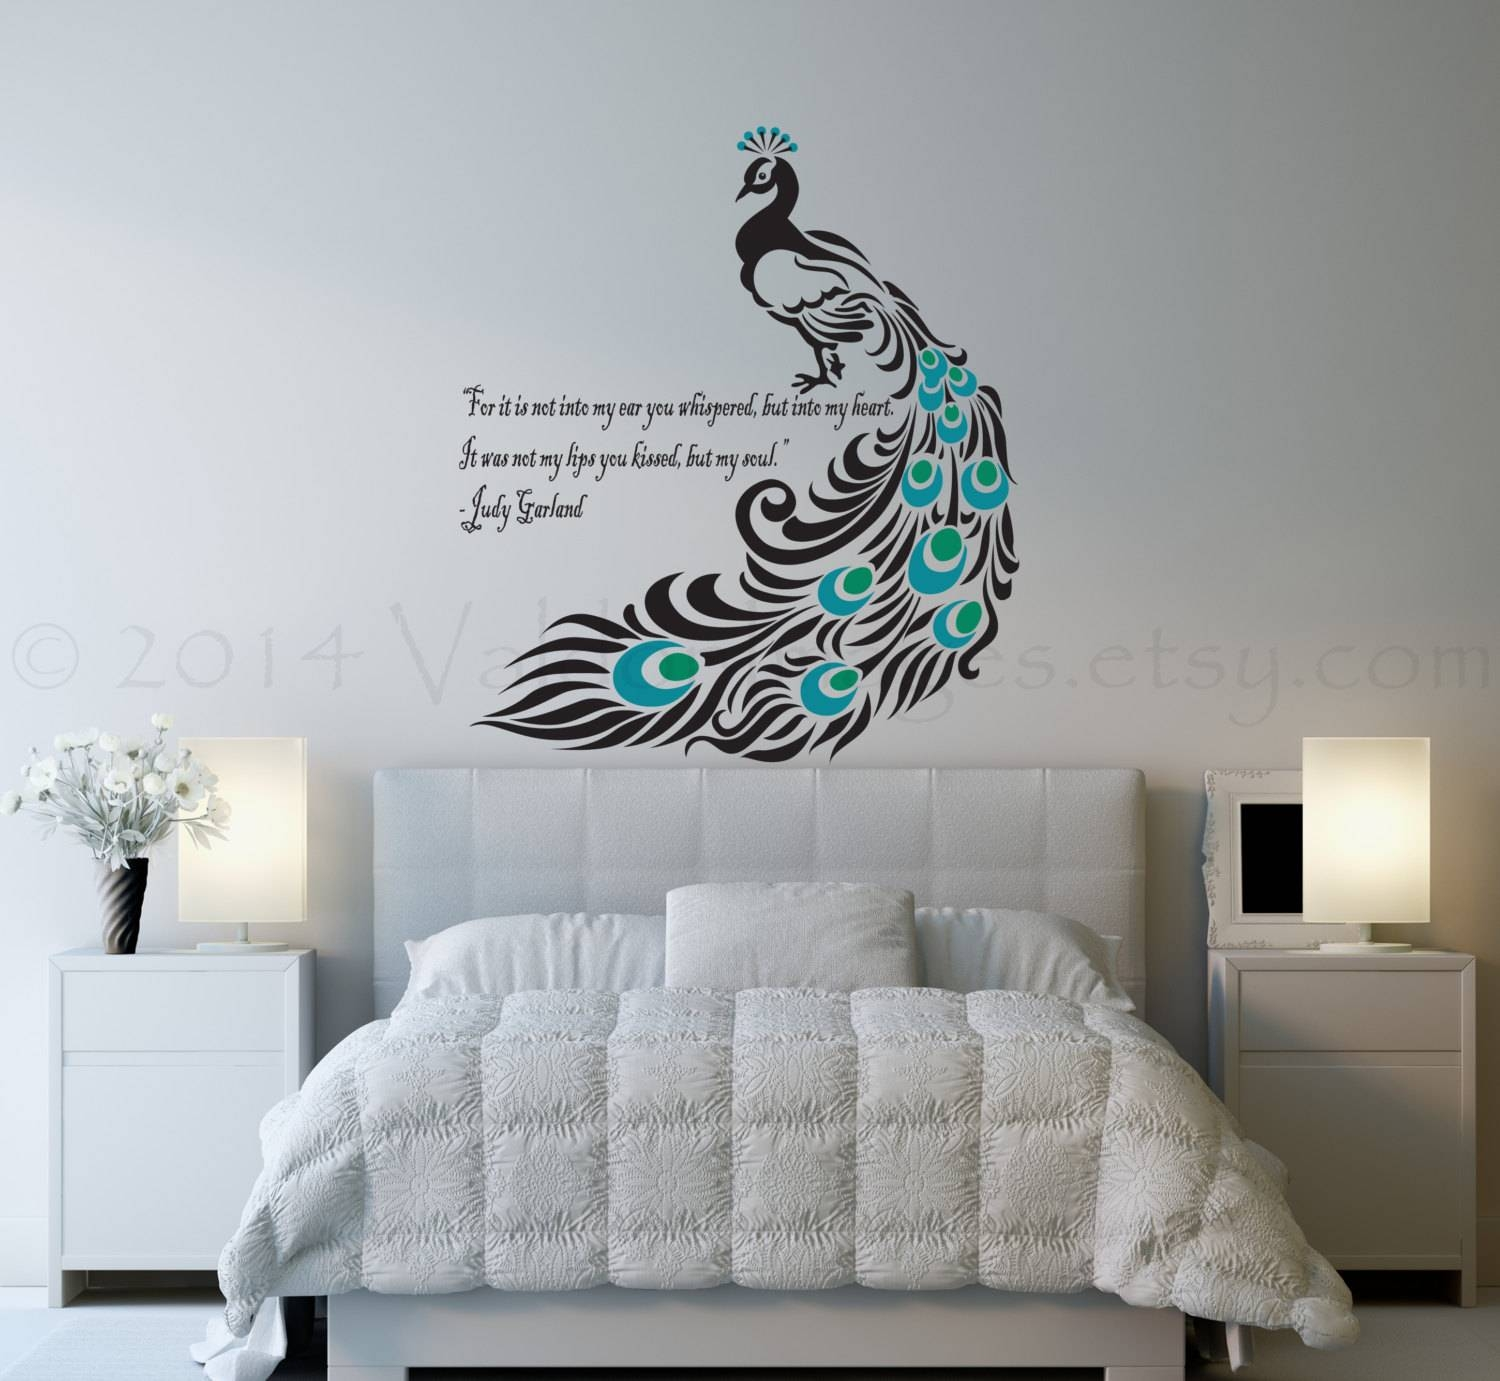 Bedroom : Superb 3d Wall Art Stickers Wall Stickers For Bedrooms Within 2018 Unusual 3d Wall Art (View 2 of 20)